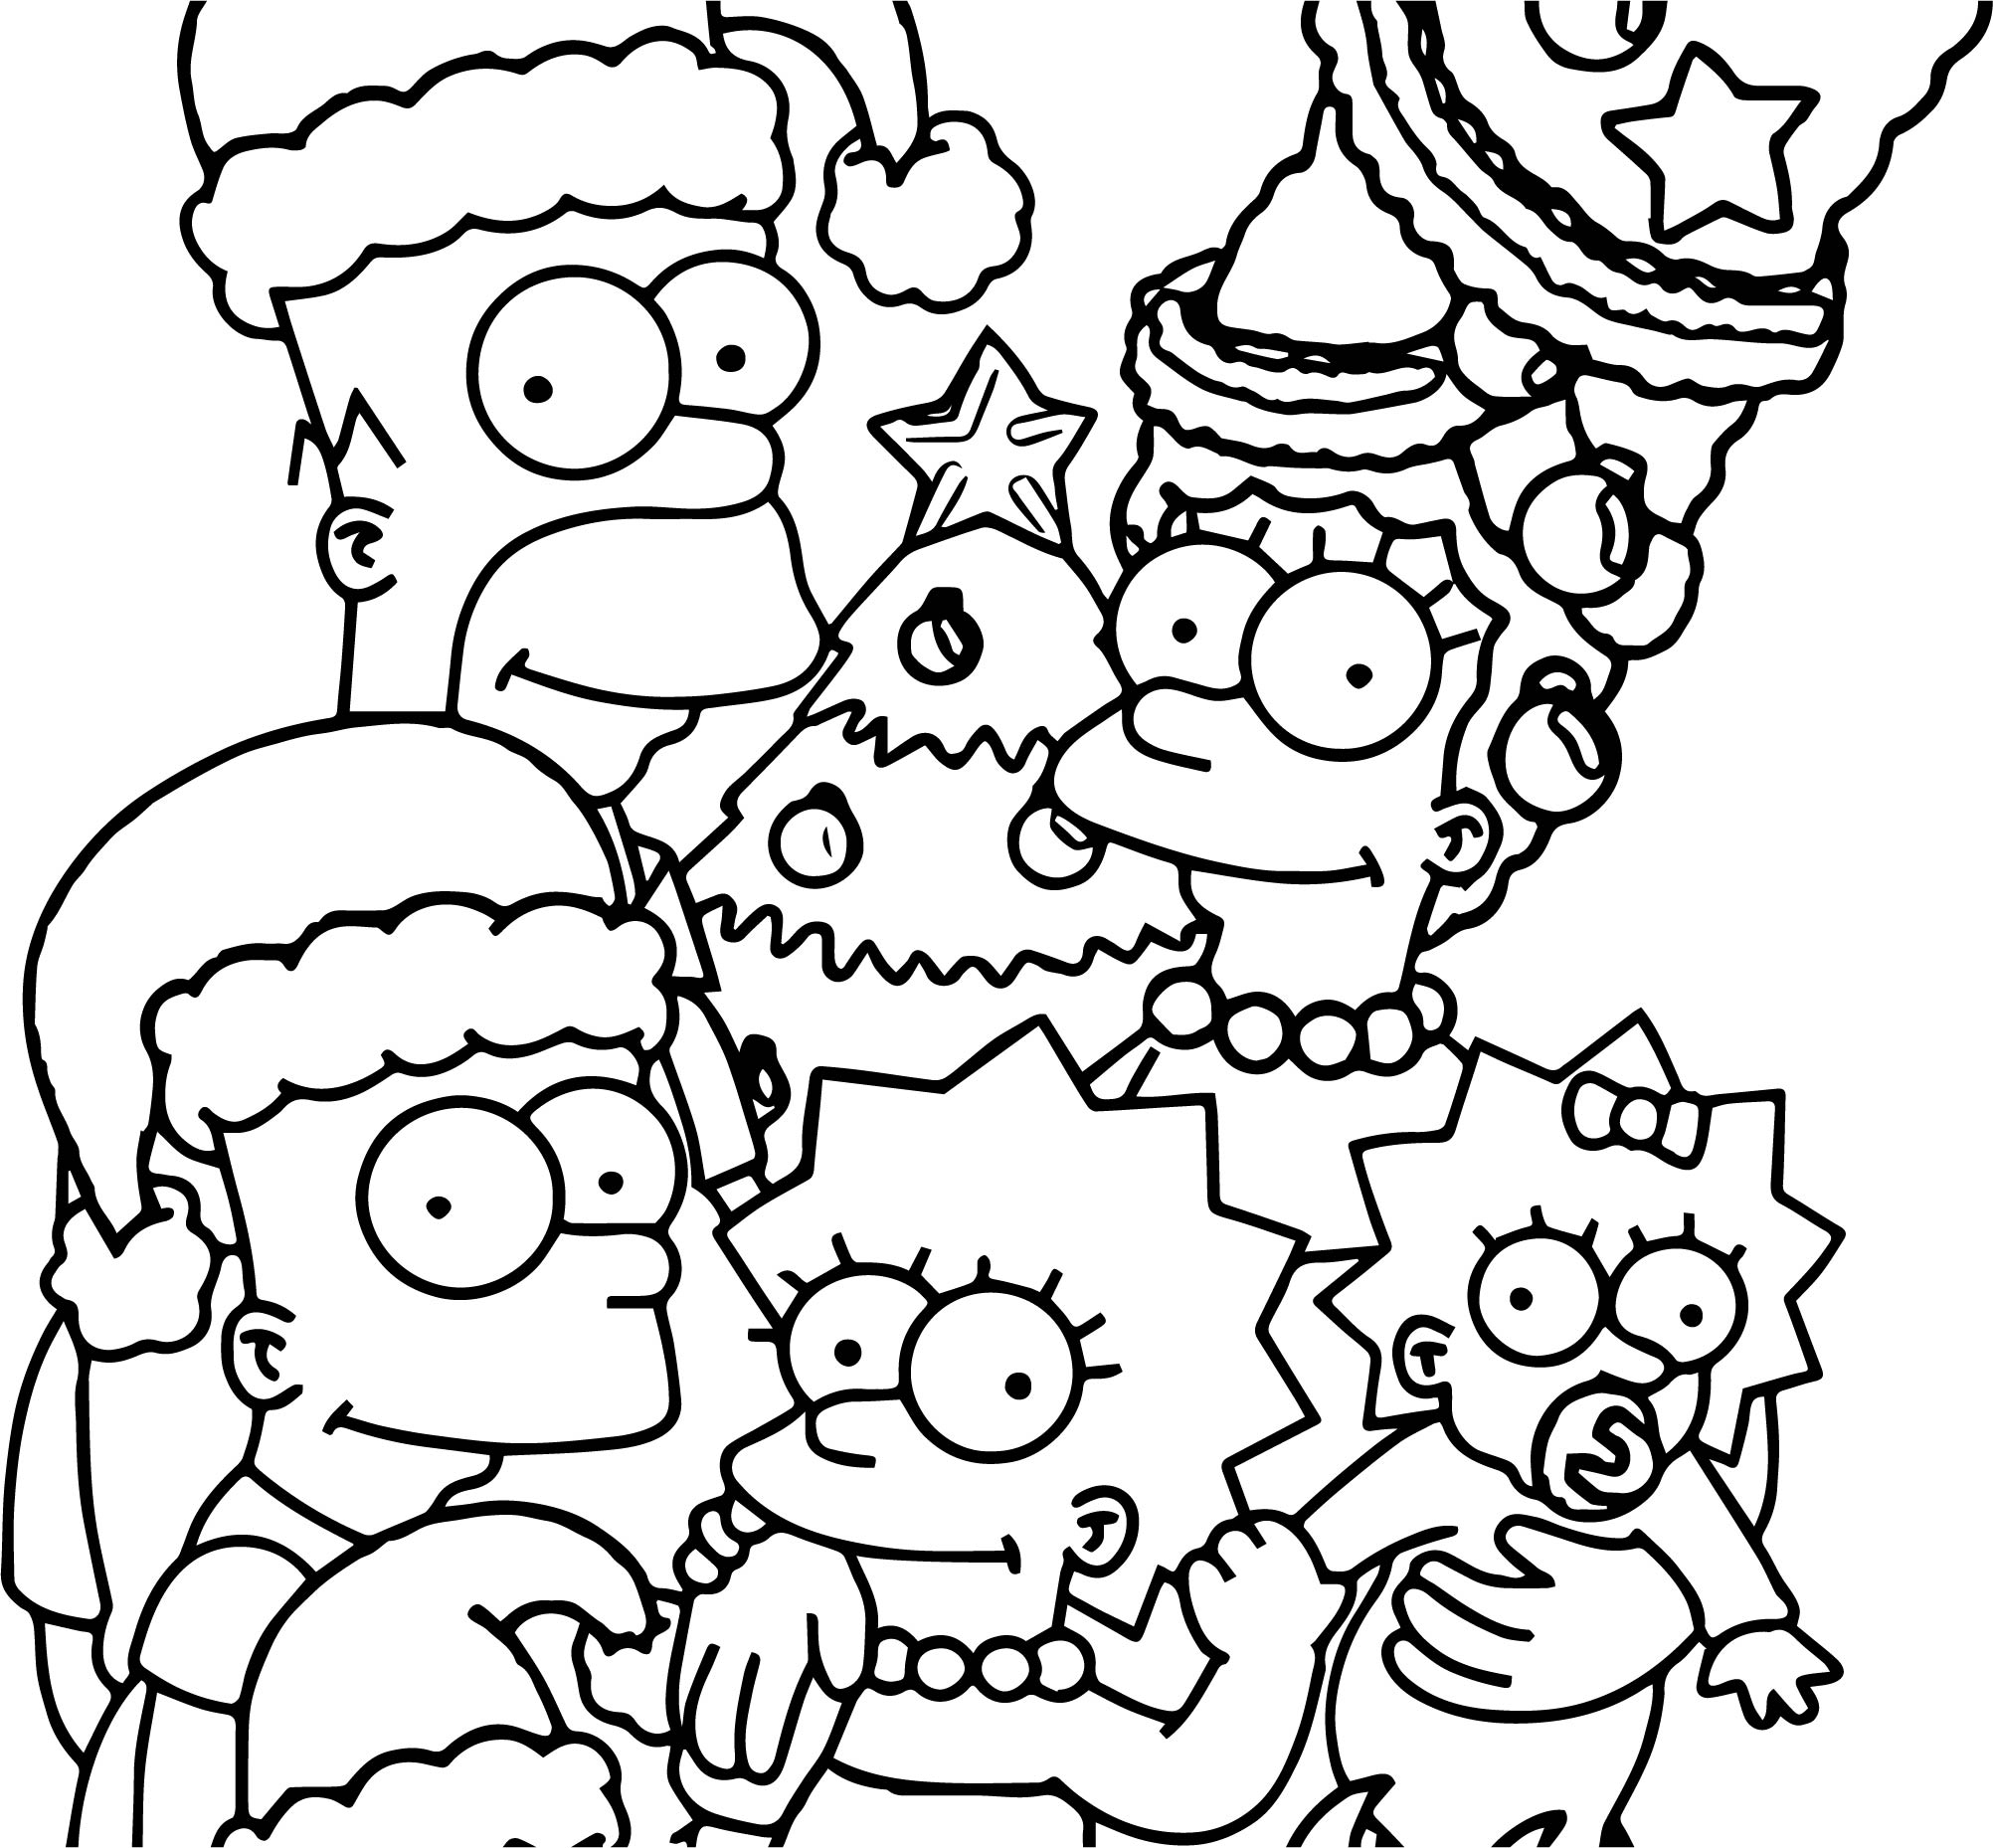 The simpsons wallpaper christmas coloring page for Coloring pages simpsons